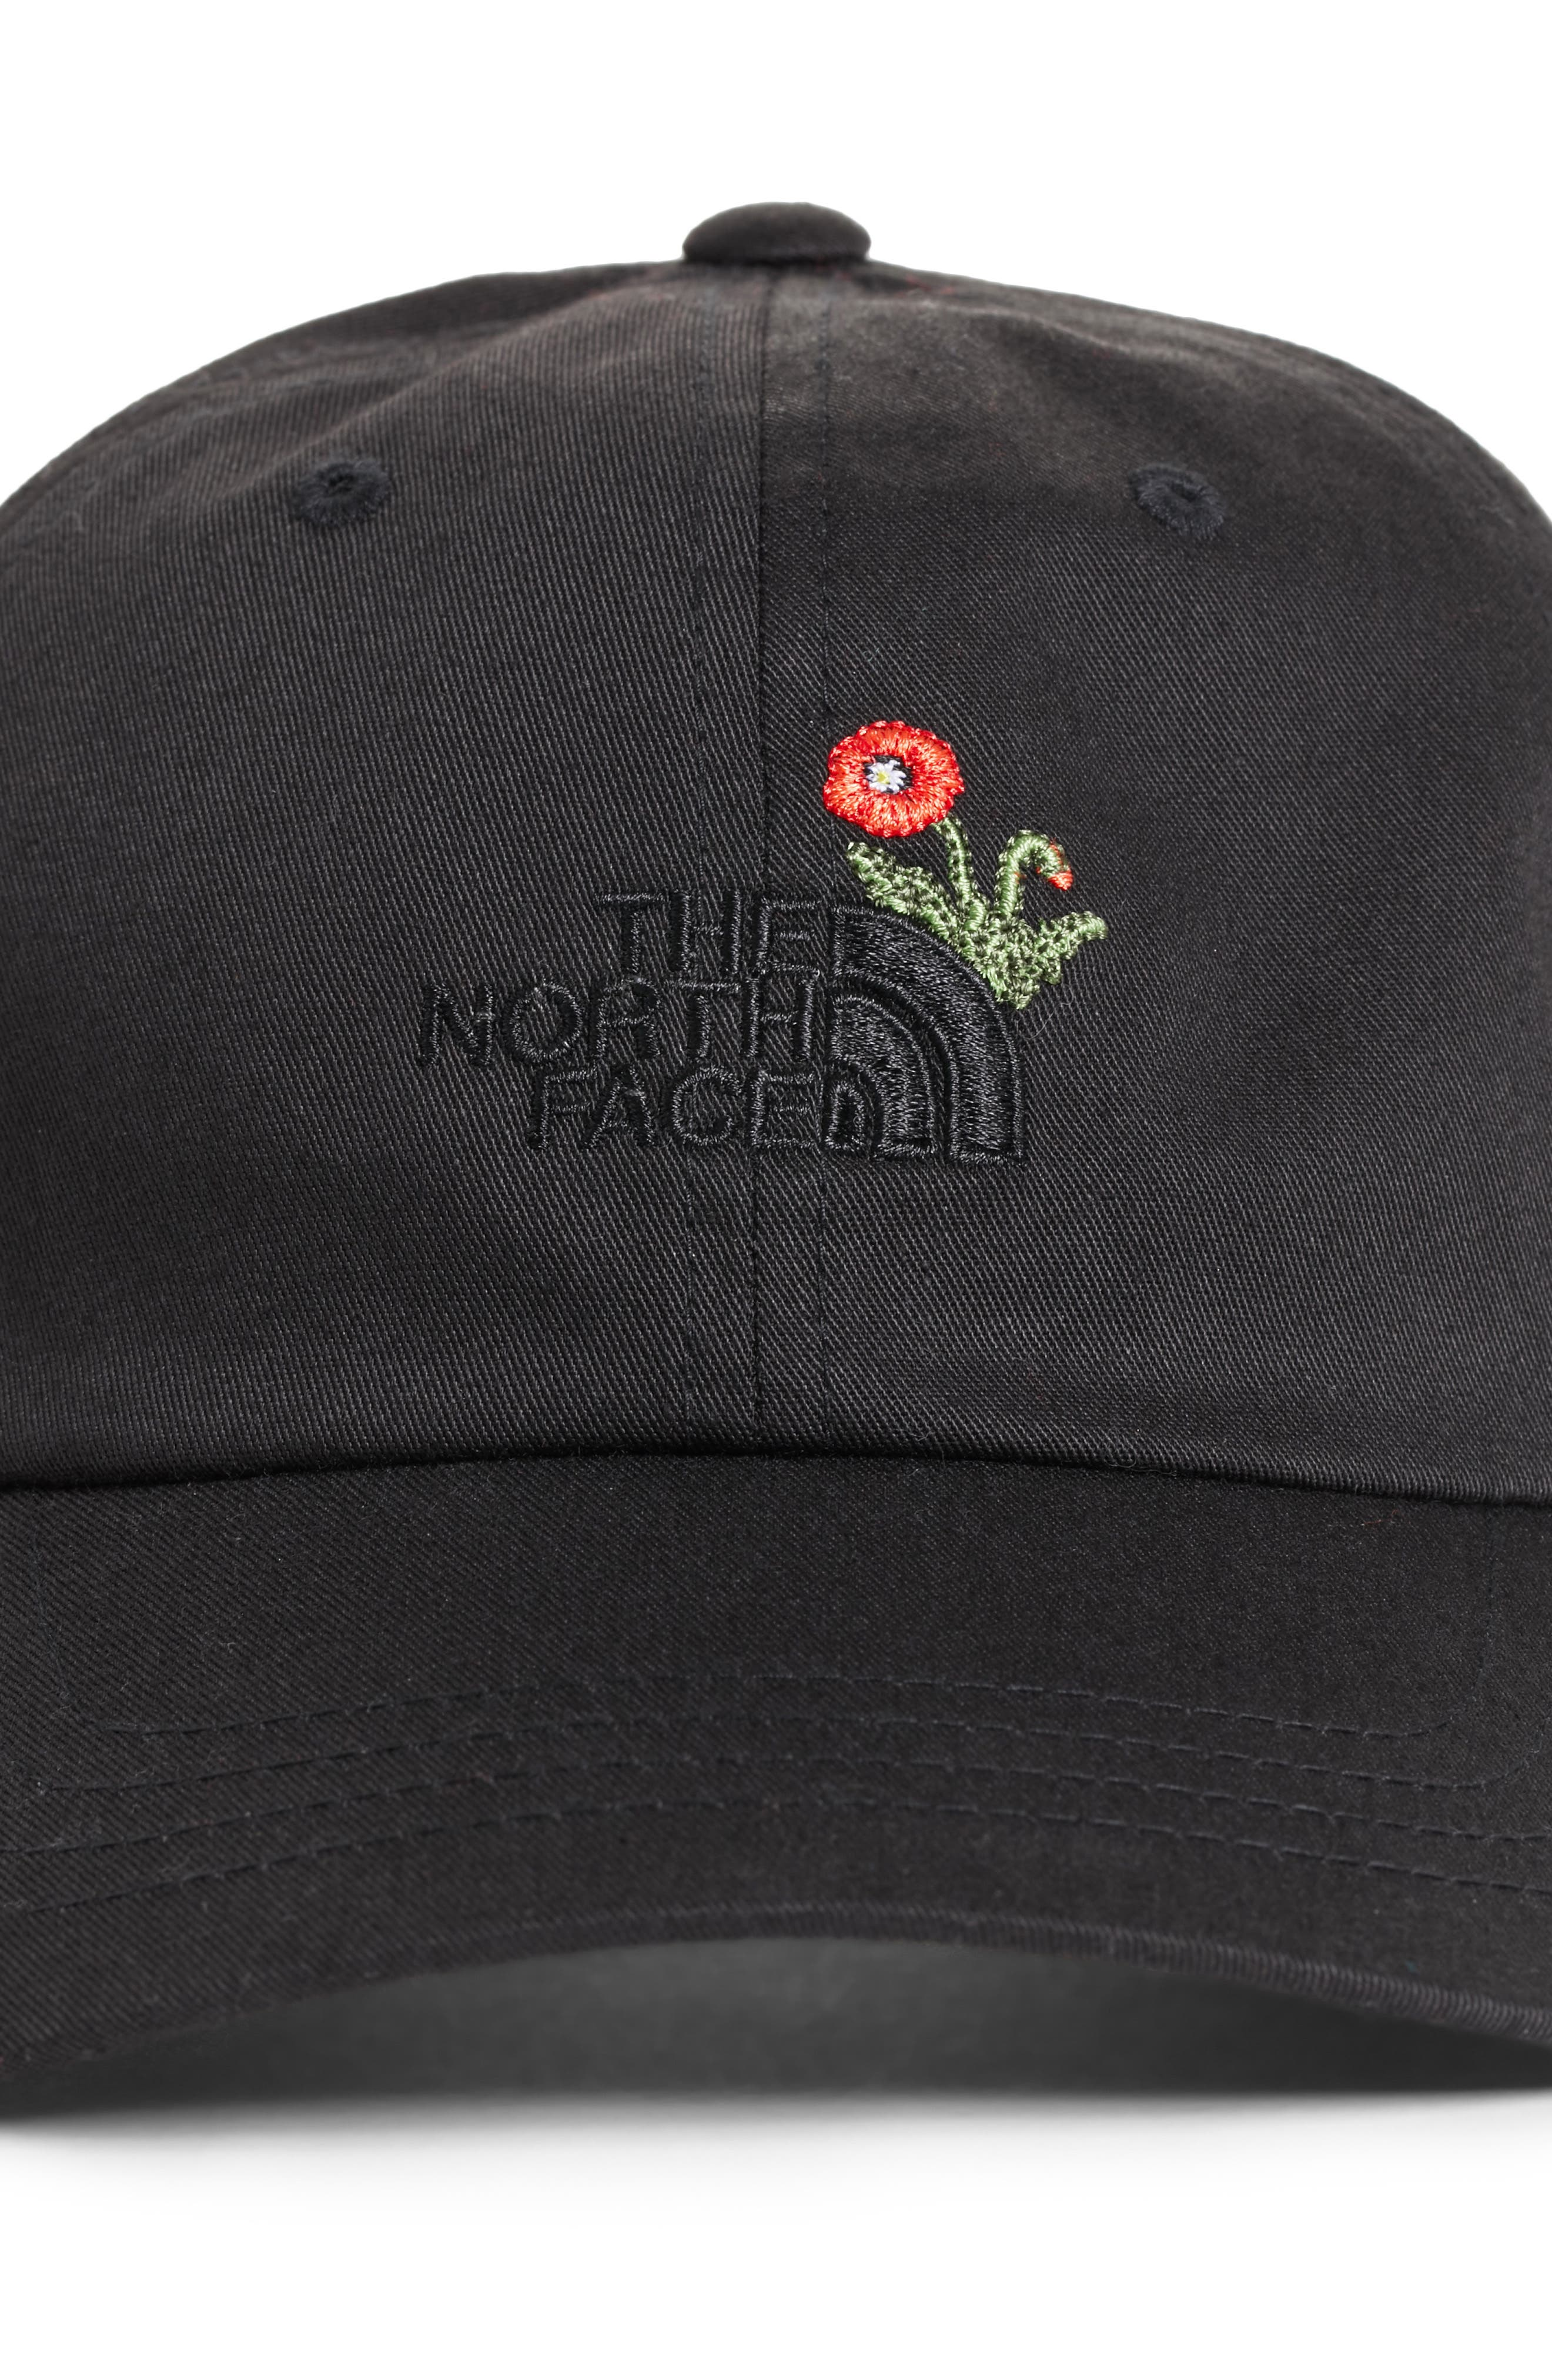 Norm Poppy Embroidered Adjustable Cap,                             Alternate thumbnail 3, color,                             Tnf Black